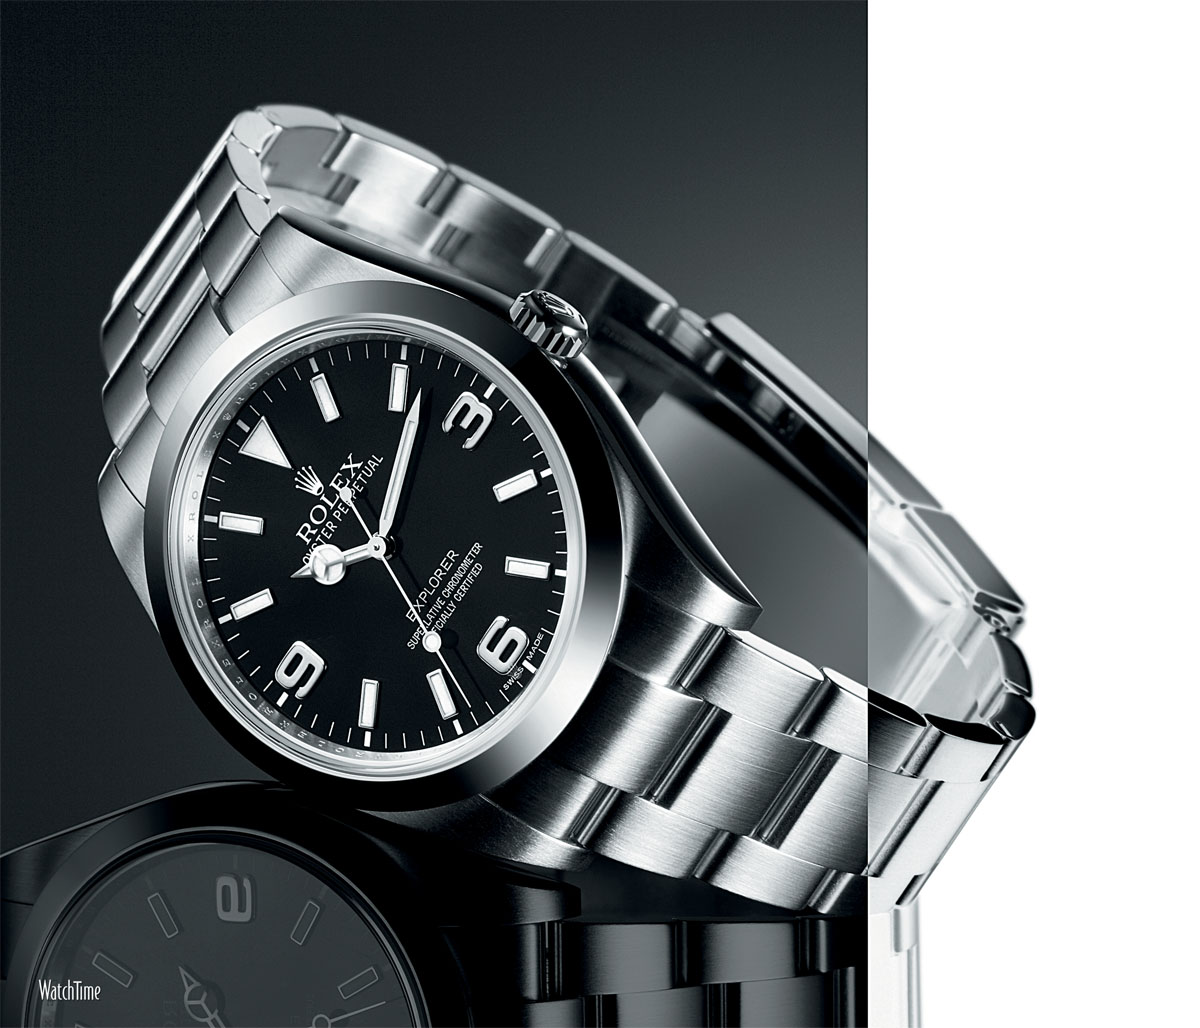 Watchtime wednesday the rolex explorer 1 review of an icon specs and price monochrome watches for Rolex explorer